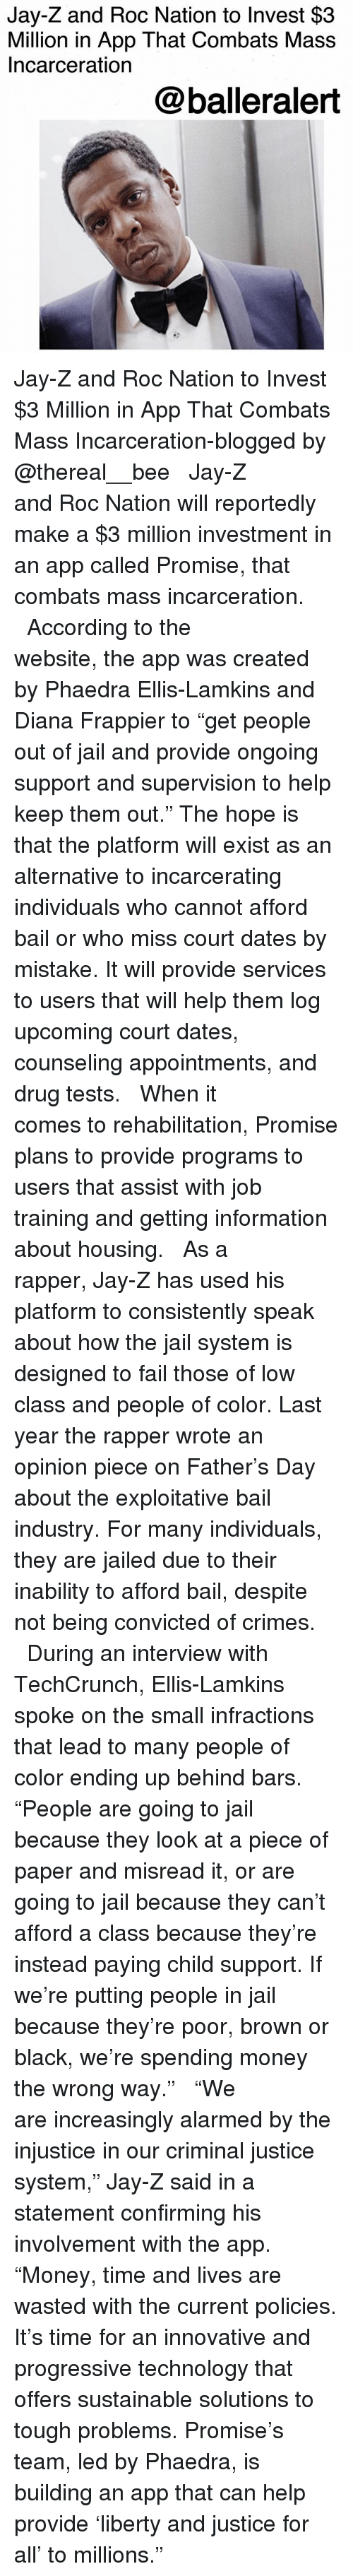 "Child Support, Fail, and Jail: Jay-Z and Roc Nation to Invest $3  Million in App That Combats Mass  Incarceration  @balleralert Jay-Z and Roc Nation to Invest $3 Million in App That Combats Mass Incarceration-blogged by @thereal__bee ⠀⠀⠀⠀⠀⠀⠀⠀⠀ ⠀⠀ Jay-Z and Roc Nation will reportedly make a $3 million investment in an app called Promise, that combats mass incarceration. ⠀⠀⠀⠀⠀⠀⠀⠀⠀ ⠀⠀ According to the website, the app was created by Phaedra Ellis-Lamkins and Diana Frappier to ""get people out of jail and provide ongoing support and supervision to help keep them out."" The hope is that the platform will exist as an alternative to incarcerating individuals who cannot afford bail or who miss court dates by mistake. It will provide services to users that will help them log upcoming court dates, counseling appointments, and drug tests. ⠀⠀⠀⠀⠀⠀⠀⠀⠀ ⠀⠀ When it comes to rehabilitation, Promise plans to provide programs to users that assist with job training and getting information about housing. ⠀⠀⠀⠀⠀⠀⠀⠀⠀ ⠀⠀ As a rapper, Jay-Z has used his platform to consistently speak about how the jail system is designed to fail those of low class and people of color. Last year the rapper wrote an opinion piece on Father's Day about the exploitative bail industry. For many individuals, they are jailed due to their inability to afford bail, despite not being convicted of crimes. ⠀⠀⠀⠀⠀⠀⠀⠀⠀ ⠀⠀ During an interview with TechCrunch, Ellis-Lamkins spoke on the small infractions that lead to many people of color ending up behind bars. ""People are going to jail because they look at a piece of paper and misread it, or are going to jail because they can't afford a class because they're instead paying child support. If we're putting people in jail because they're poor, brown or black, we're spending money the wrong way."" ⠀⠀⠀⠀⠀⠀⠀⠀⠀ ⠀⠀ ""We are increasingly alarmed by the injustice in our criminal justice system,"" Jay-Z said in a statement confirming his involvement with the app. ""Money, time and lives are wasted with the current policies. It's time for an innovative and progressive technology that offers sustainable solutions to tough problems. Promise's team, led by Phaedra, is building an app that can help provide 'liberty and justice for all' to millions."" ⠀⠀⠀⠀⠀⠀⠀⠀⠀ ⠀⠀"